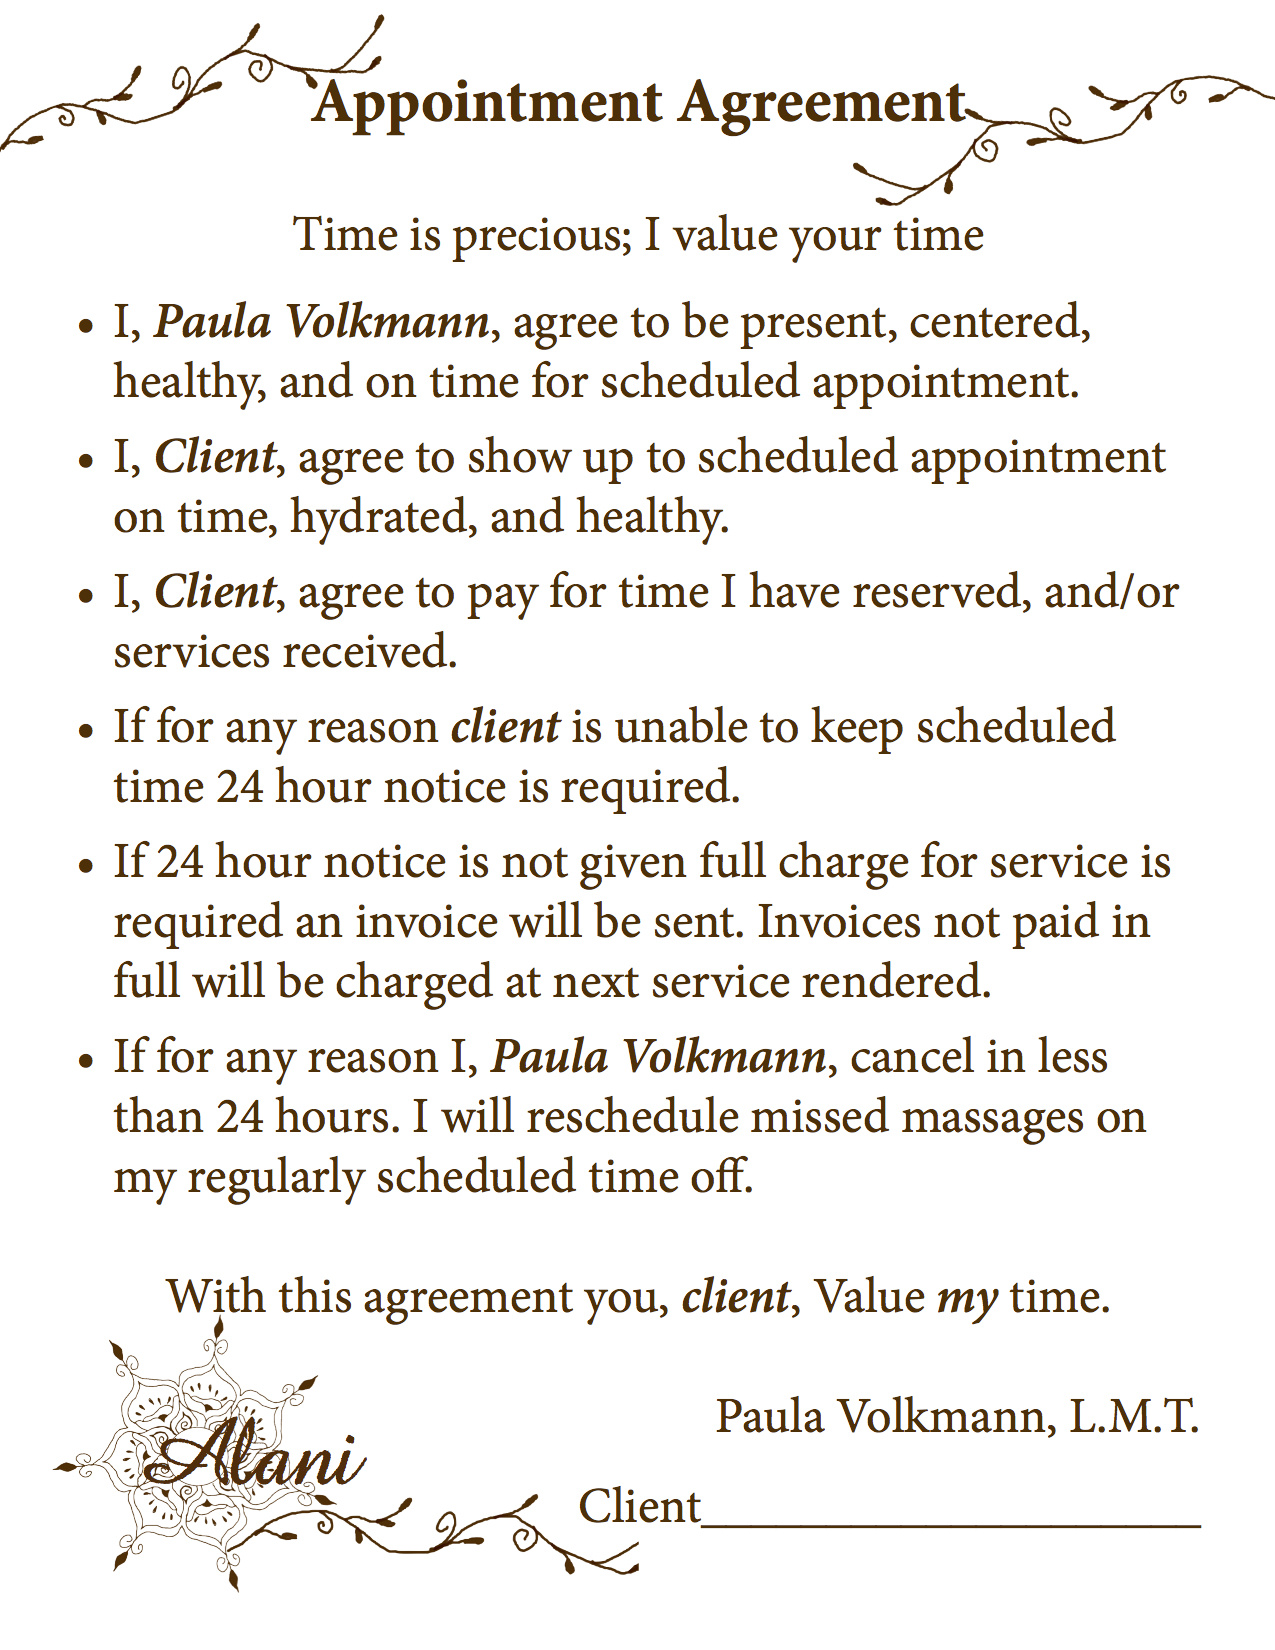 Appointment_Agreement